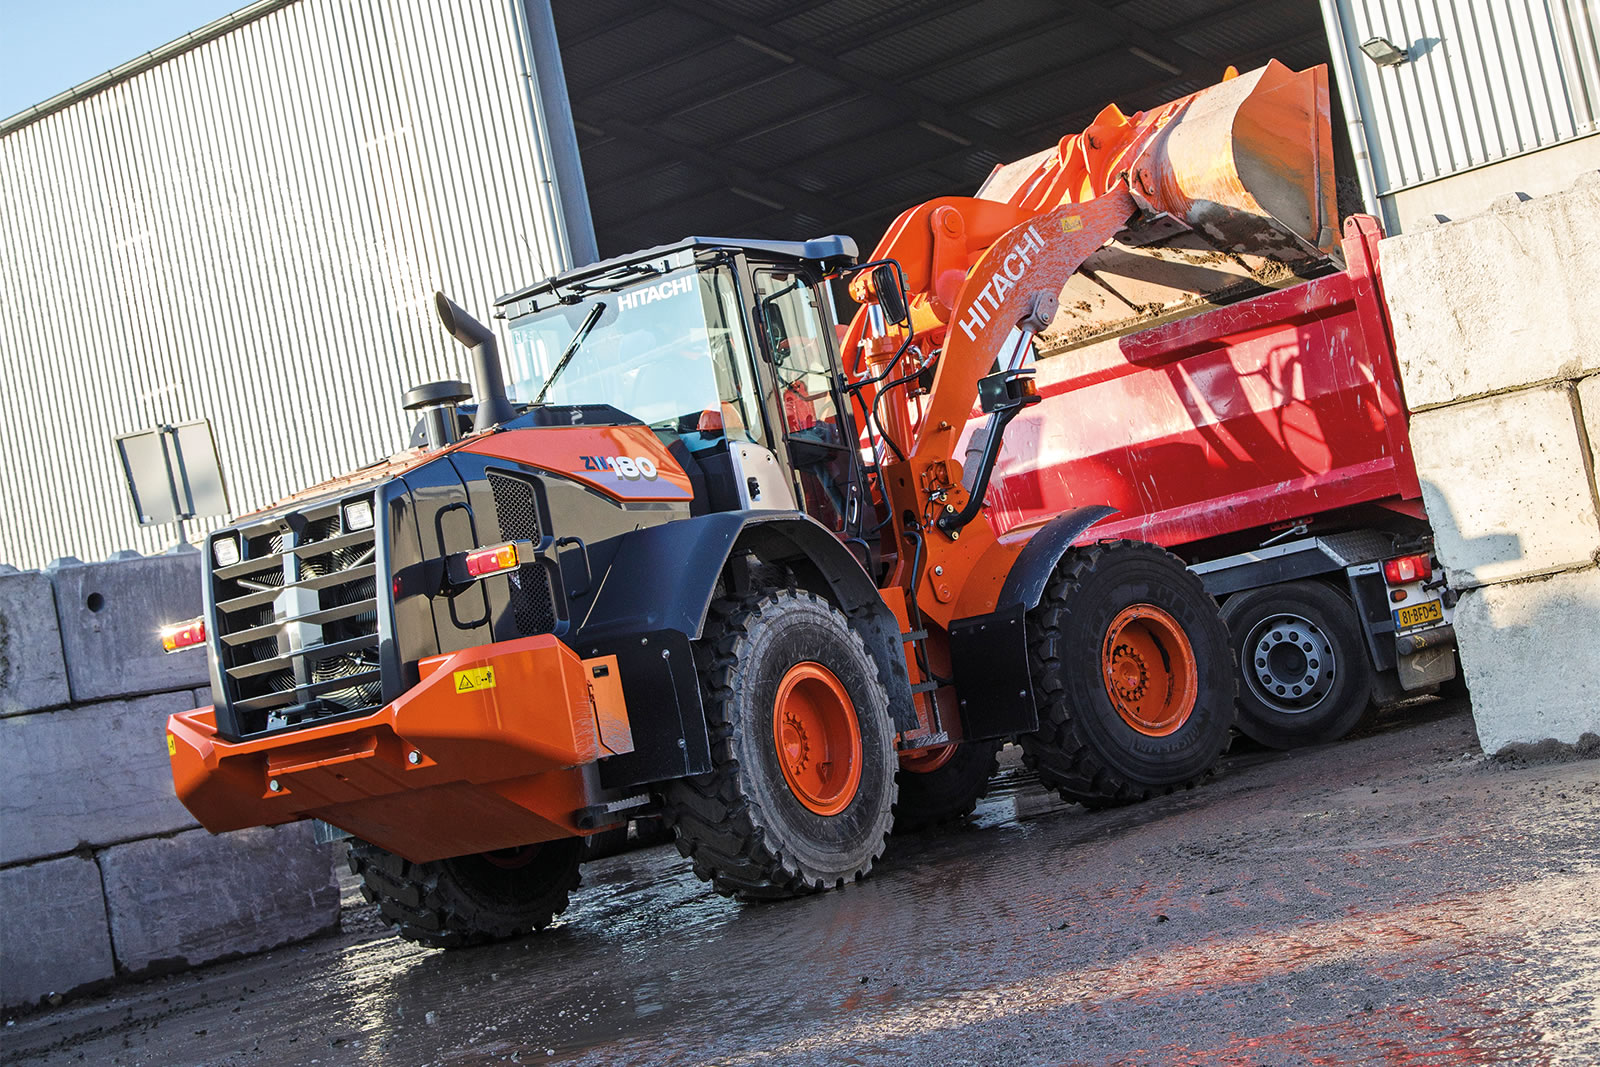 Hitachi ZW180-6 wheel loader loading material into a truck